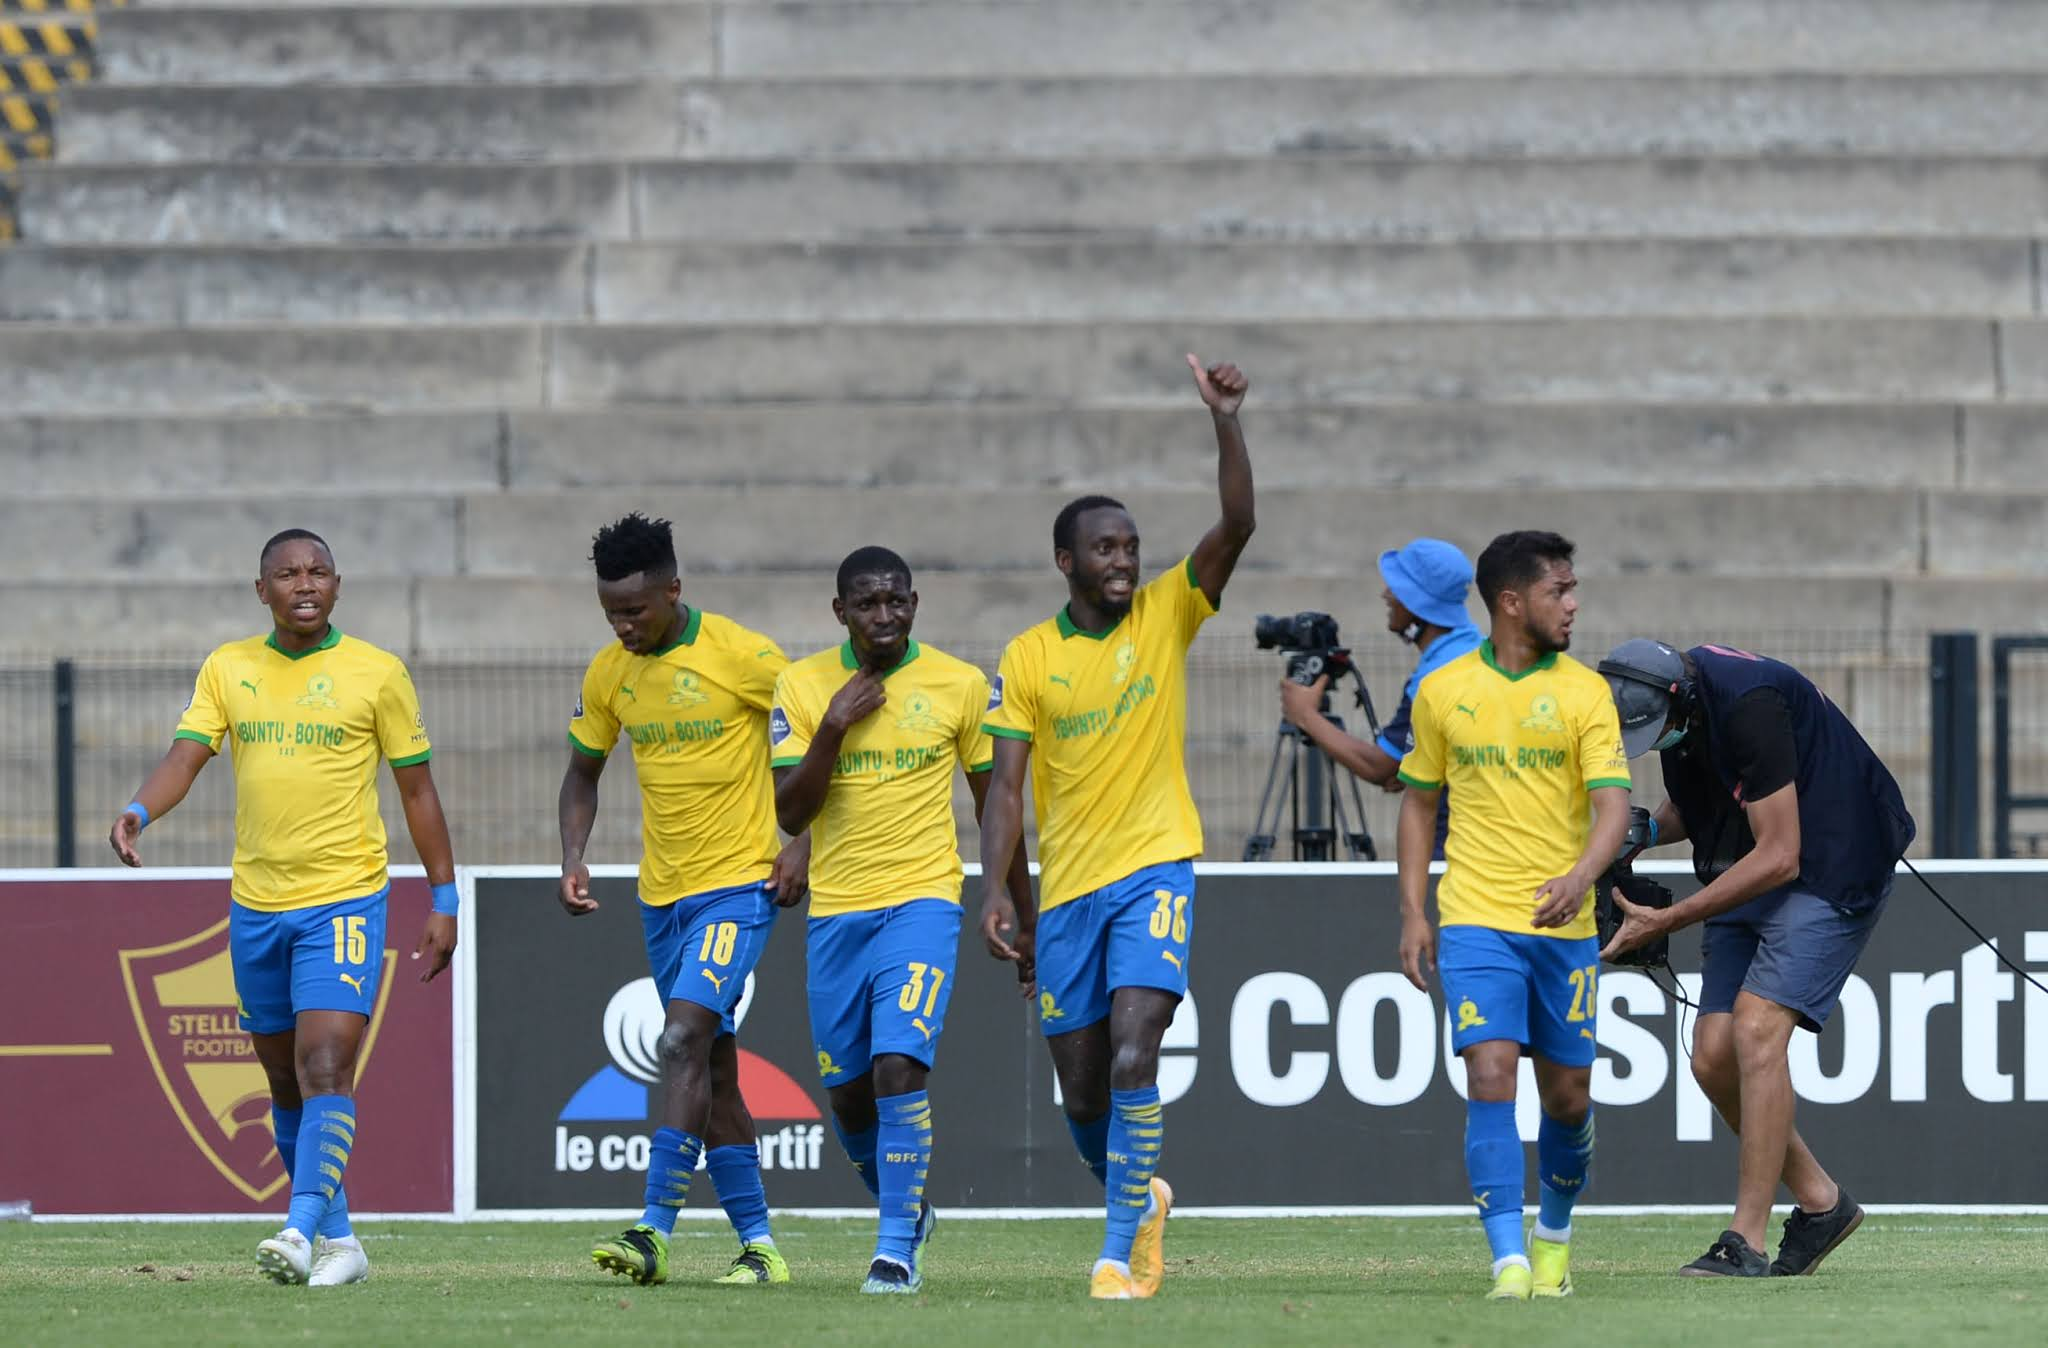 Champions Mamelodi Sundowns will return to DStv Premiership action following their CAF Champions League conquests